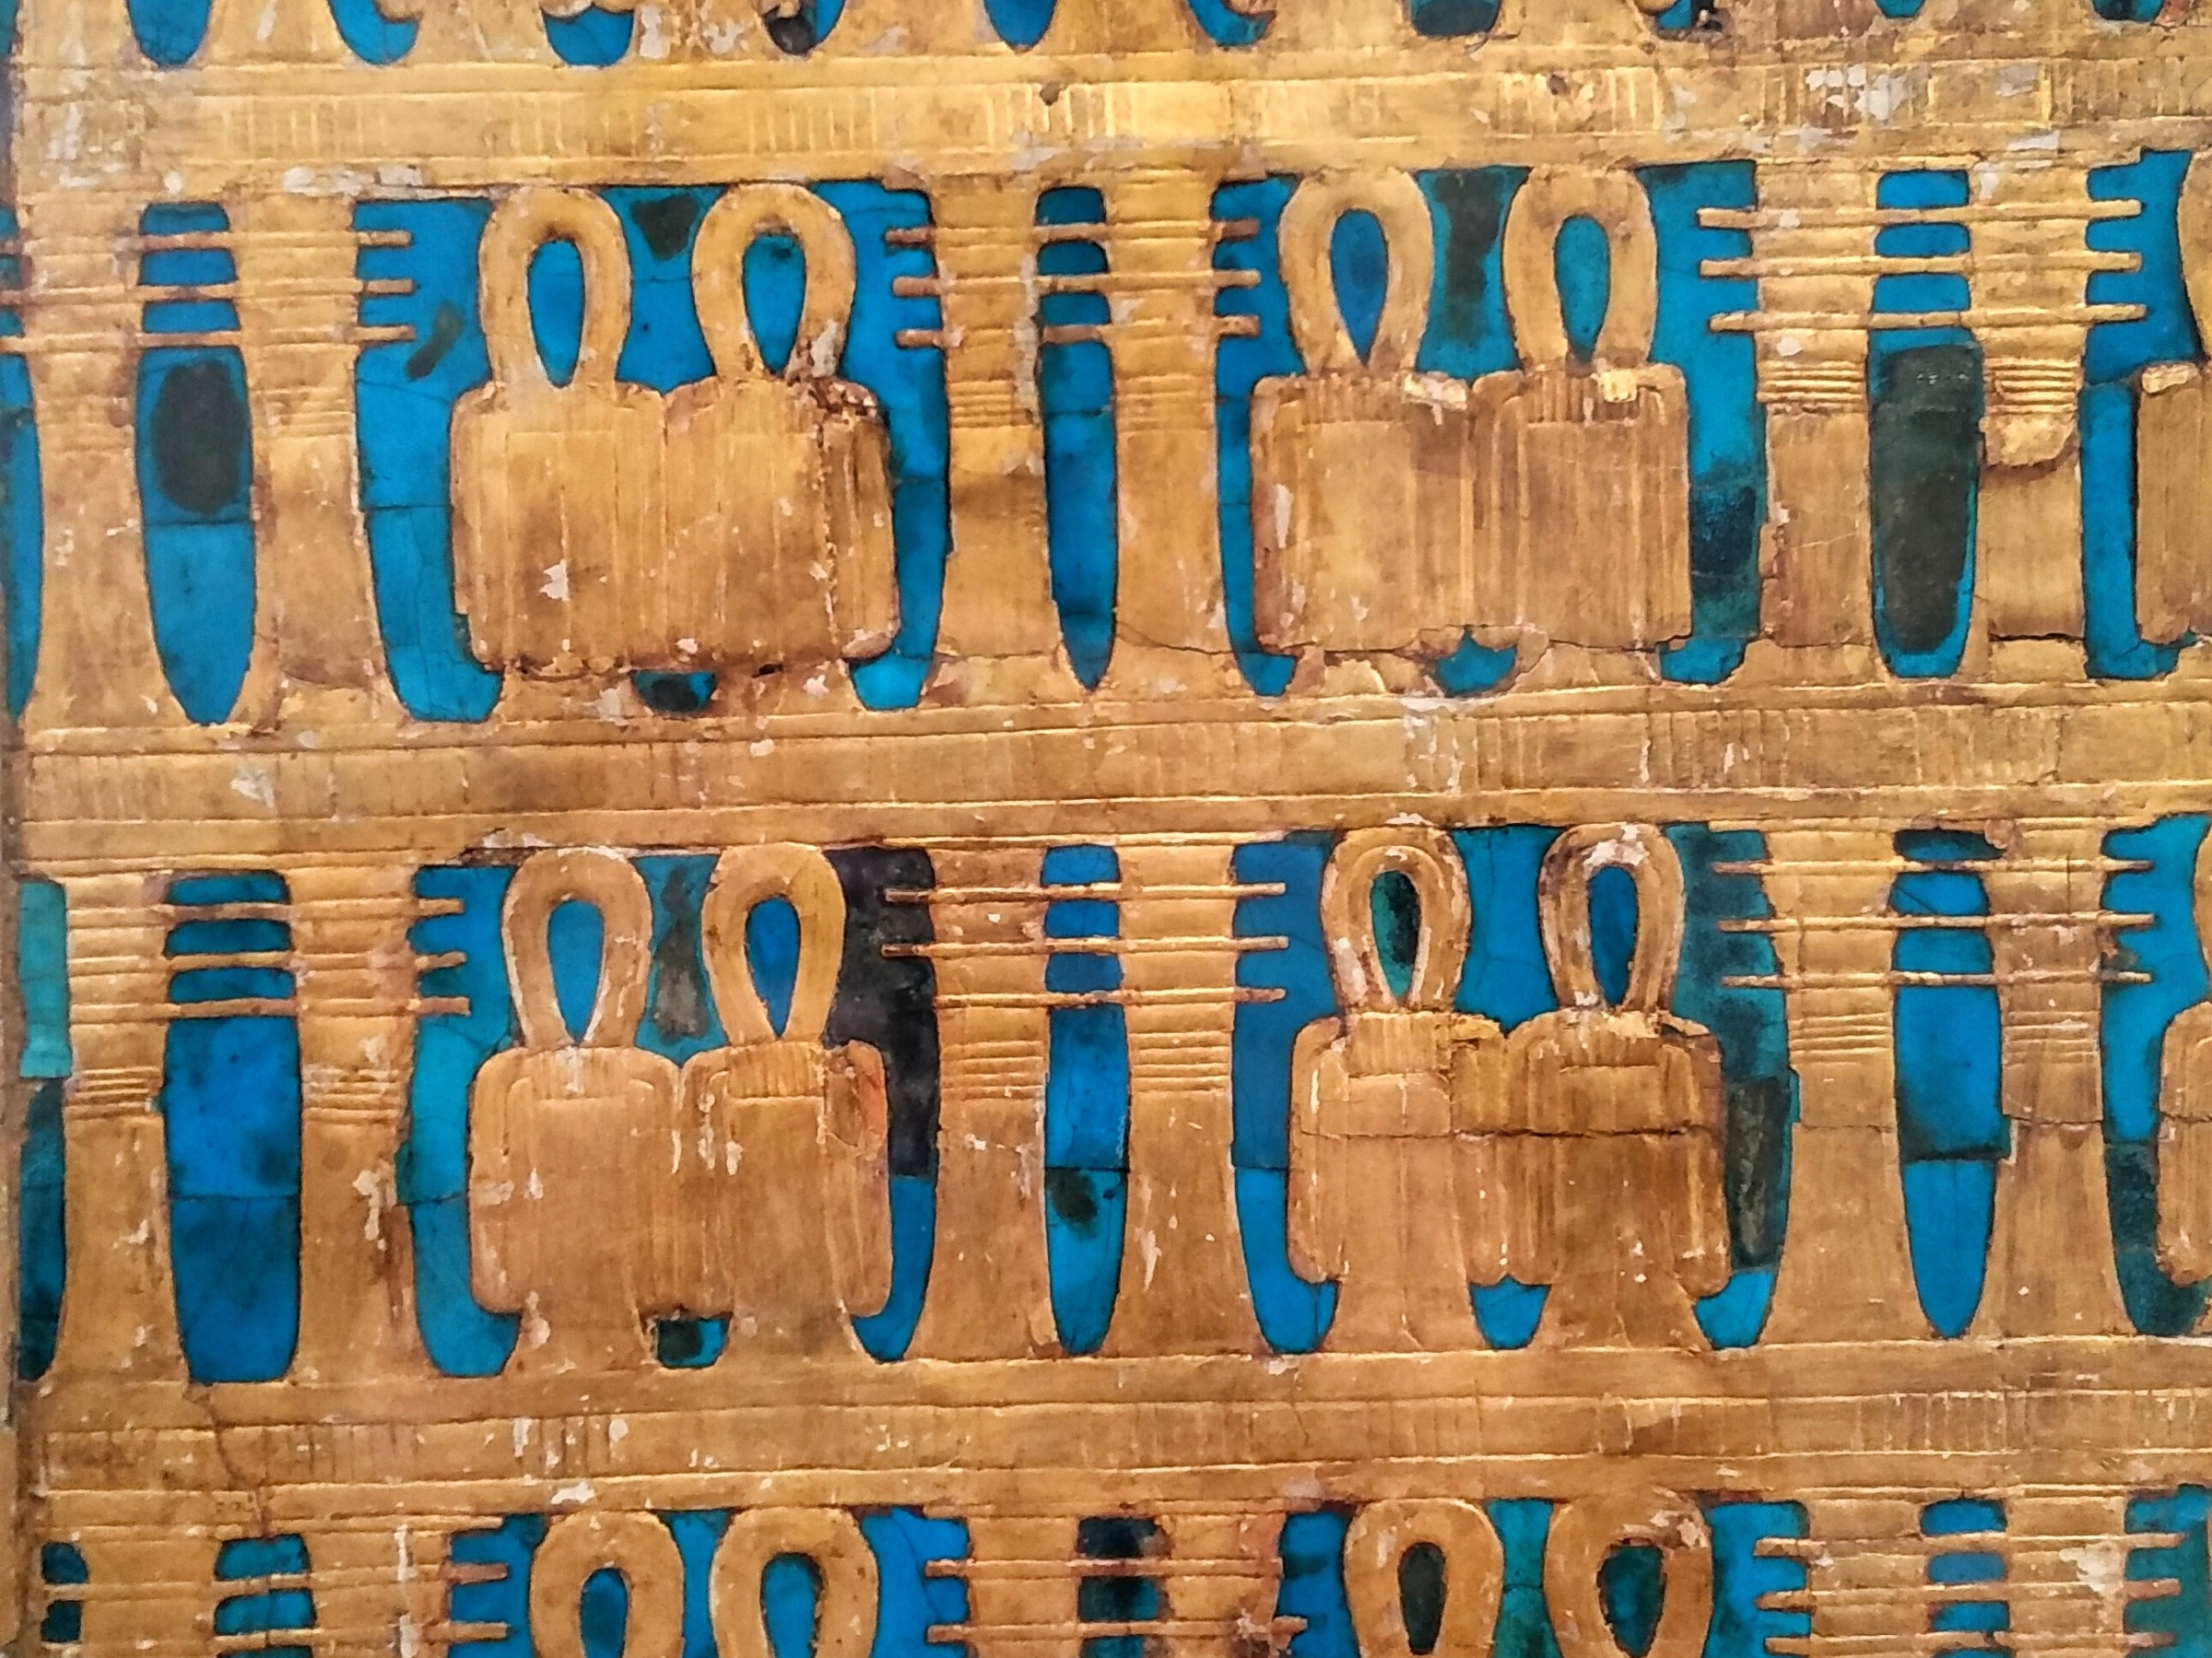 The side of a gold and turquoise coffin in the Cairo museum